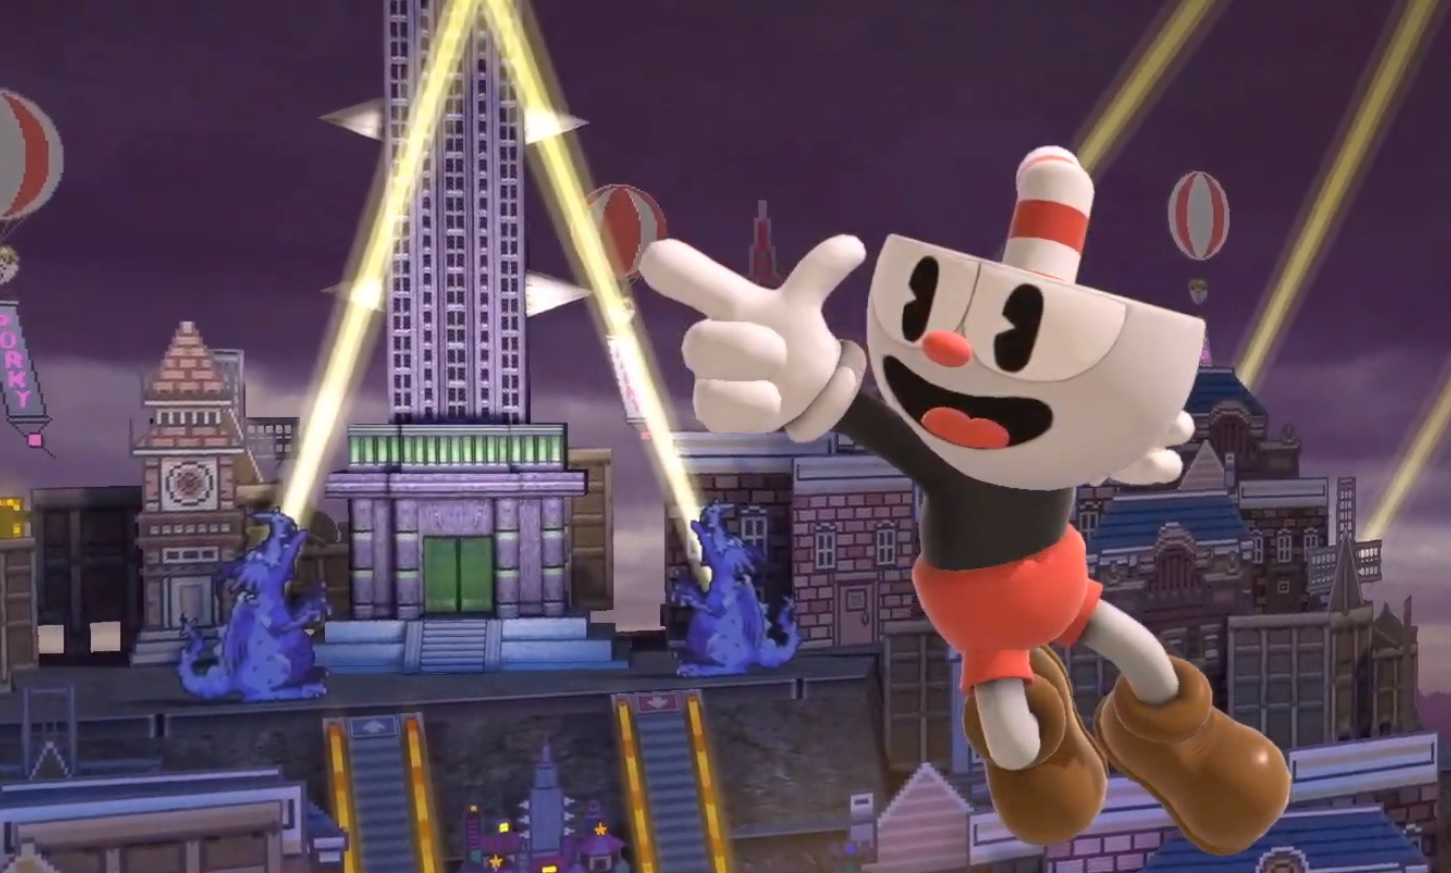 Cuphead and Assassin's Creed are invading Smash Ultimate in Mii form screenshot